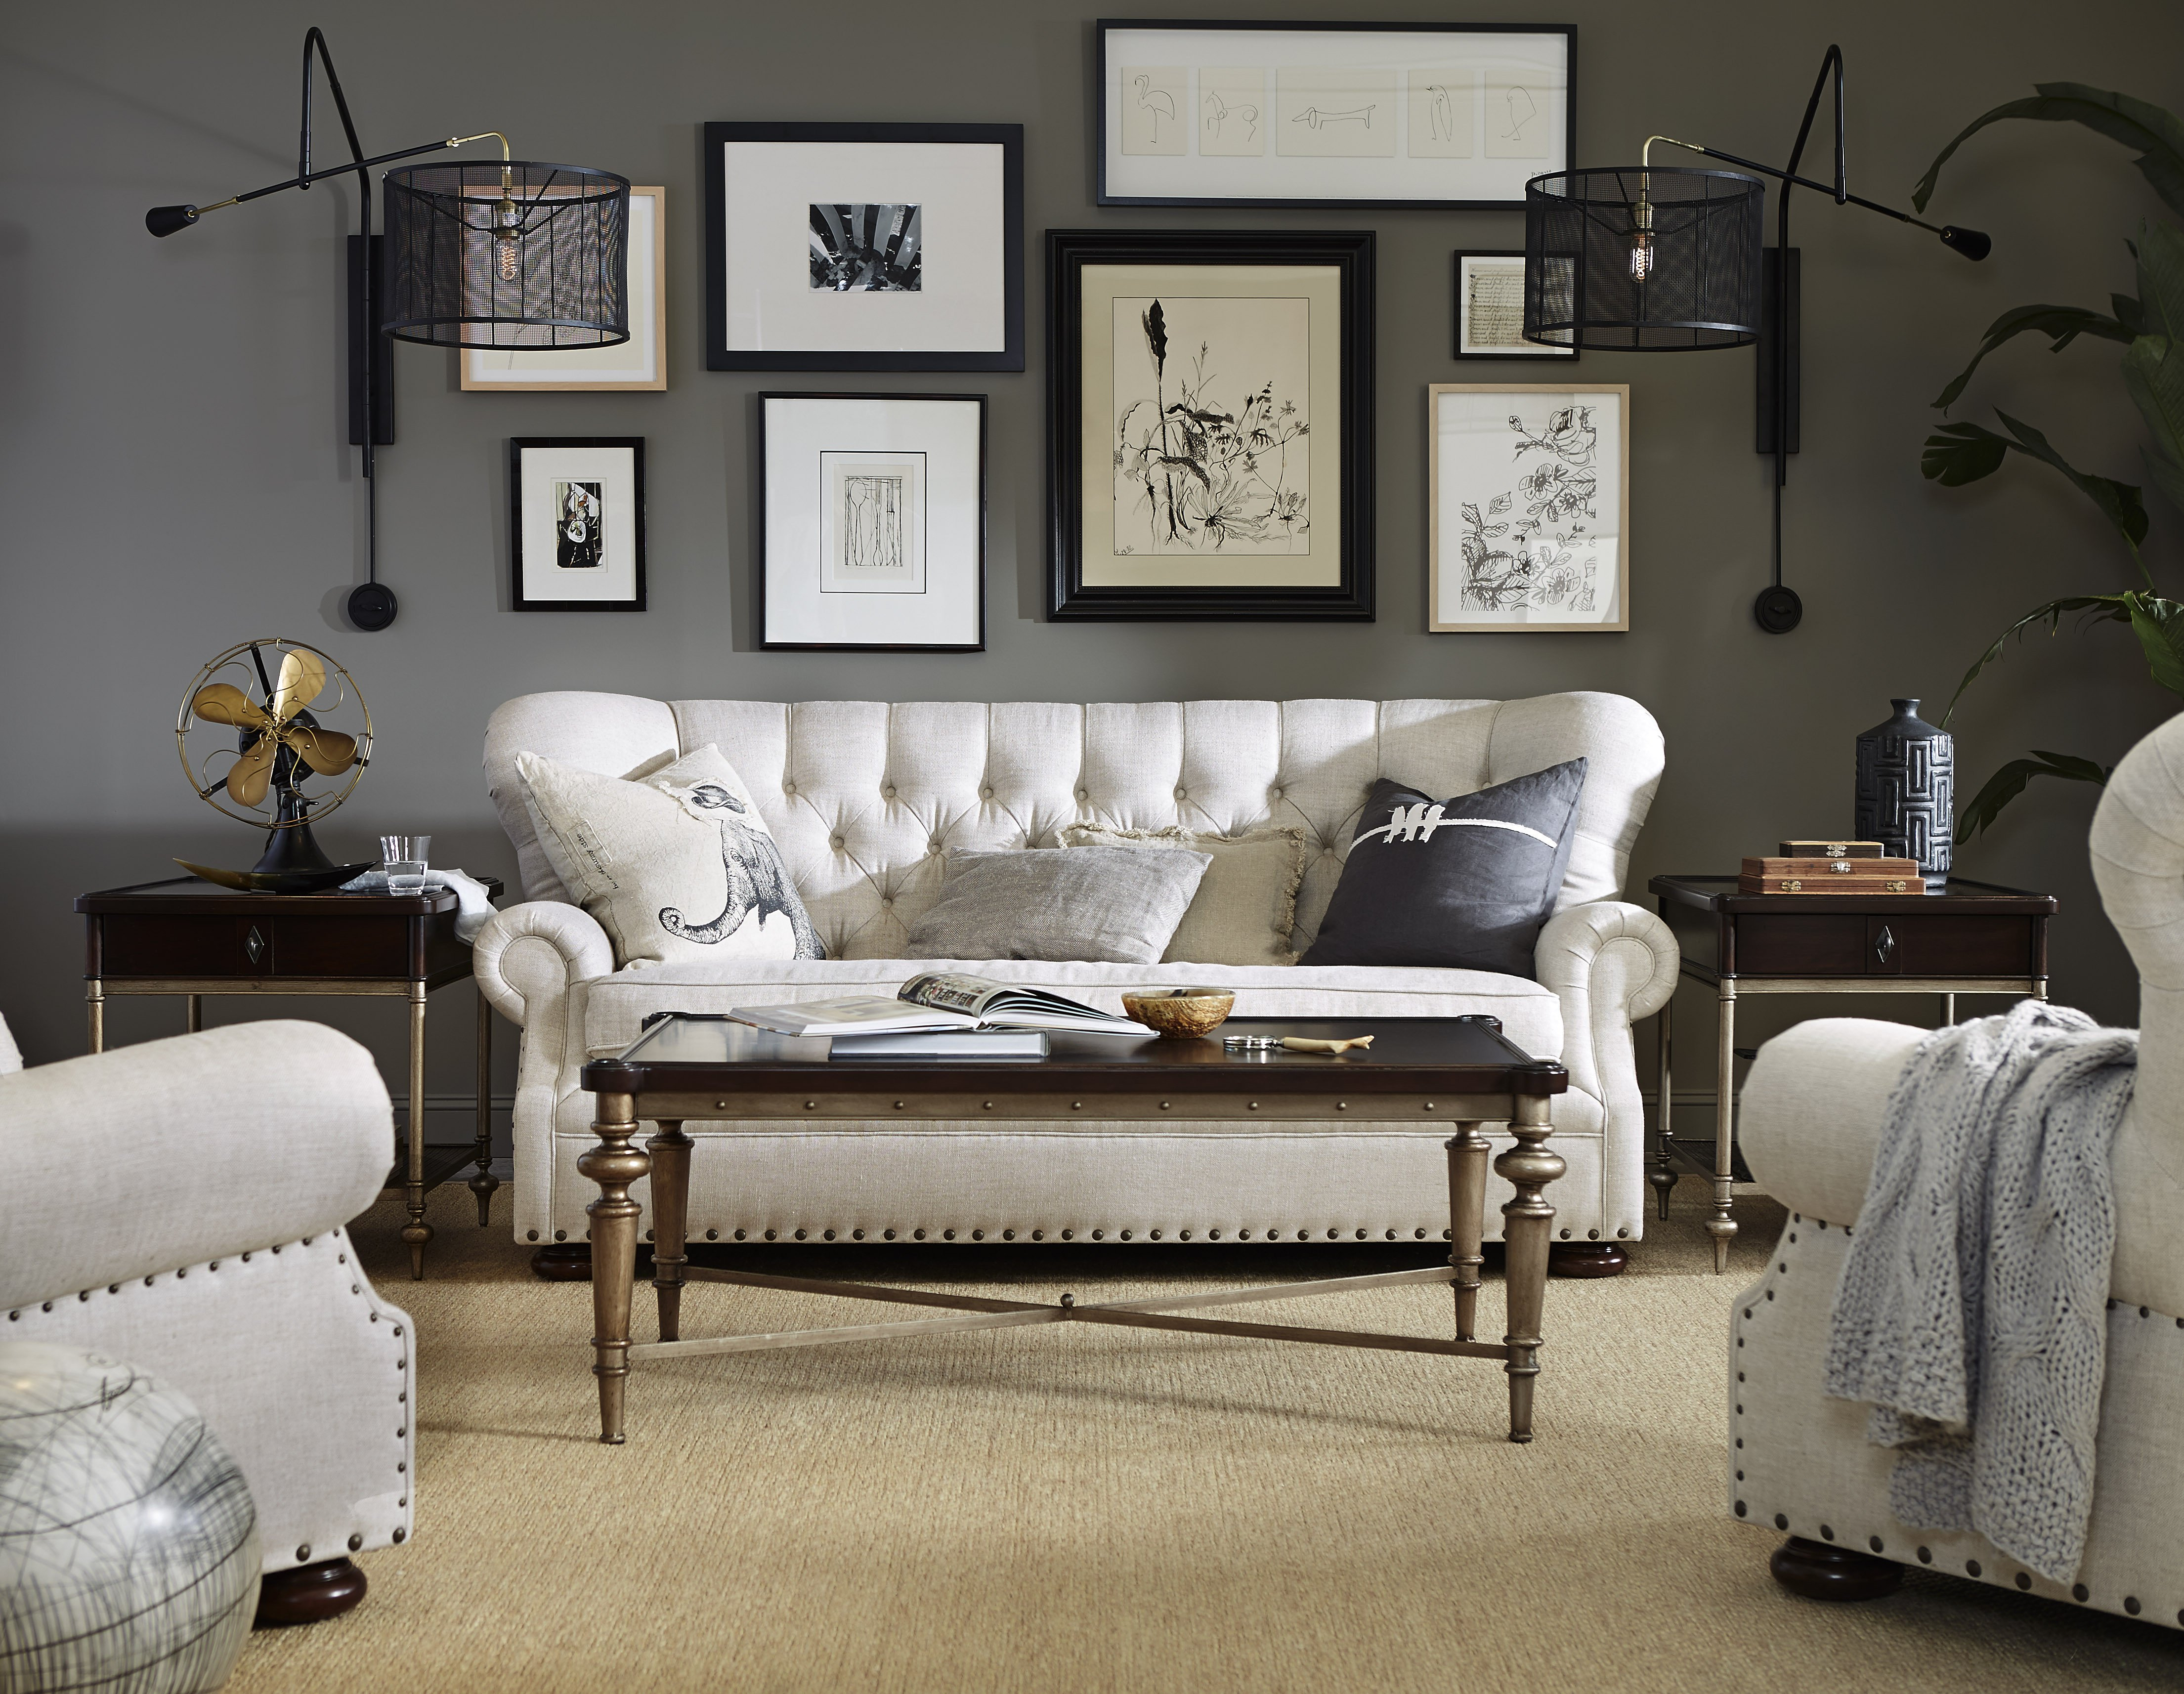 Best Place for Home Decor New Best Home Decor Shops In Irvine – Cbs Los Angeles